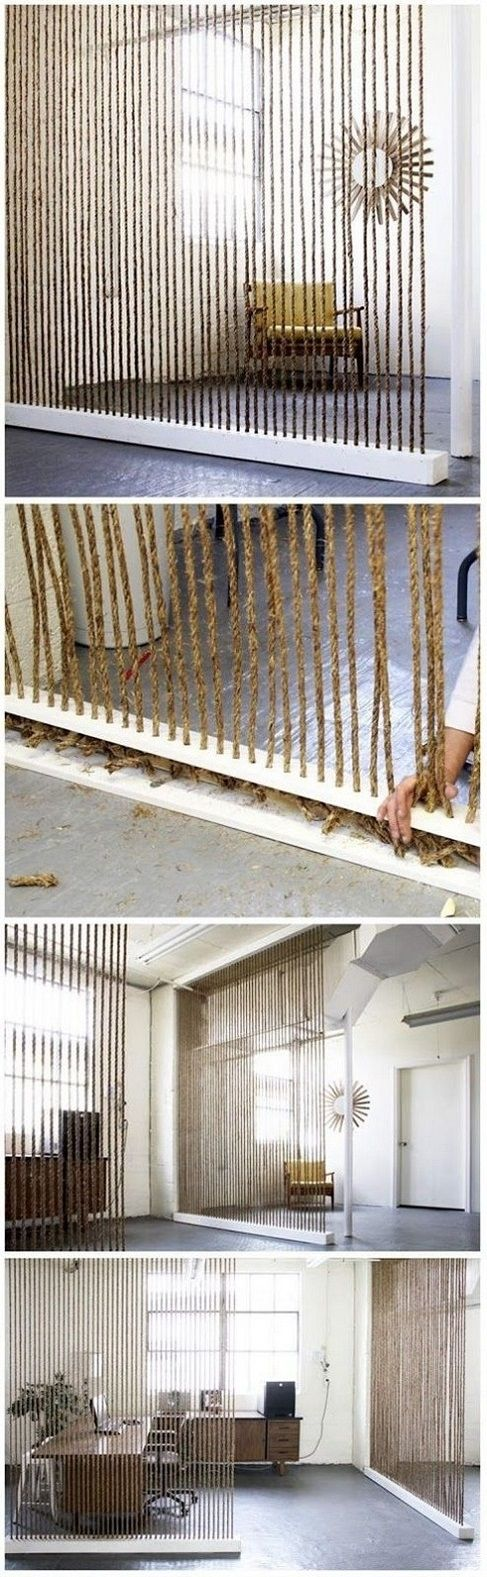 DIY Rope Wall ideas